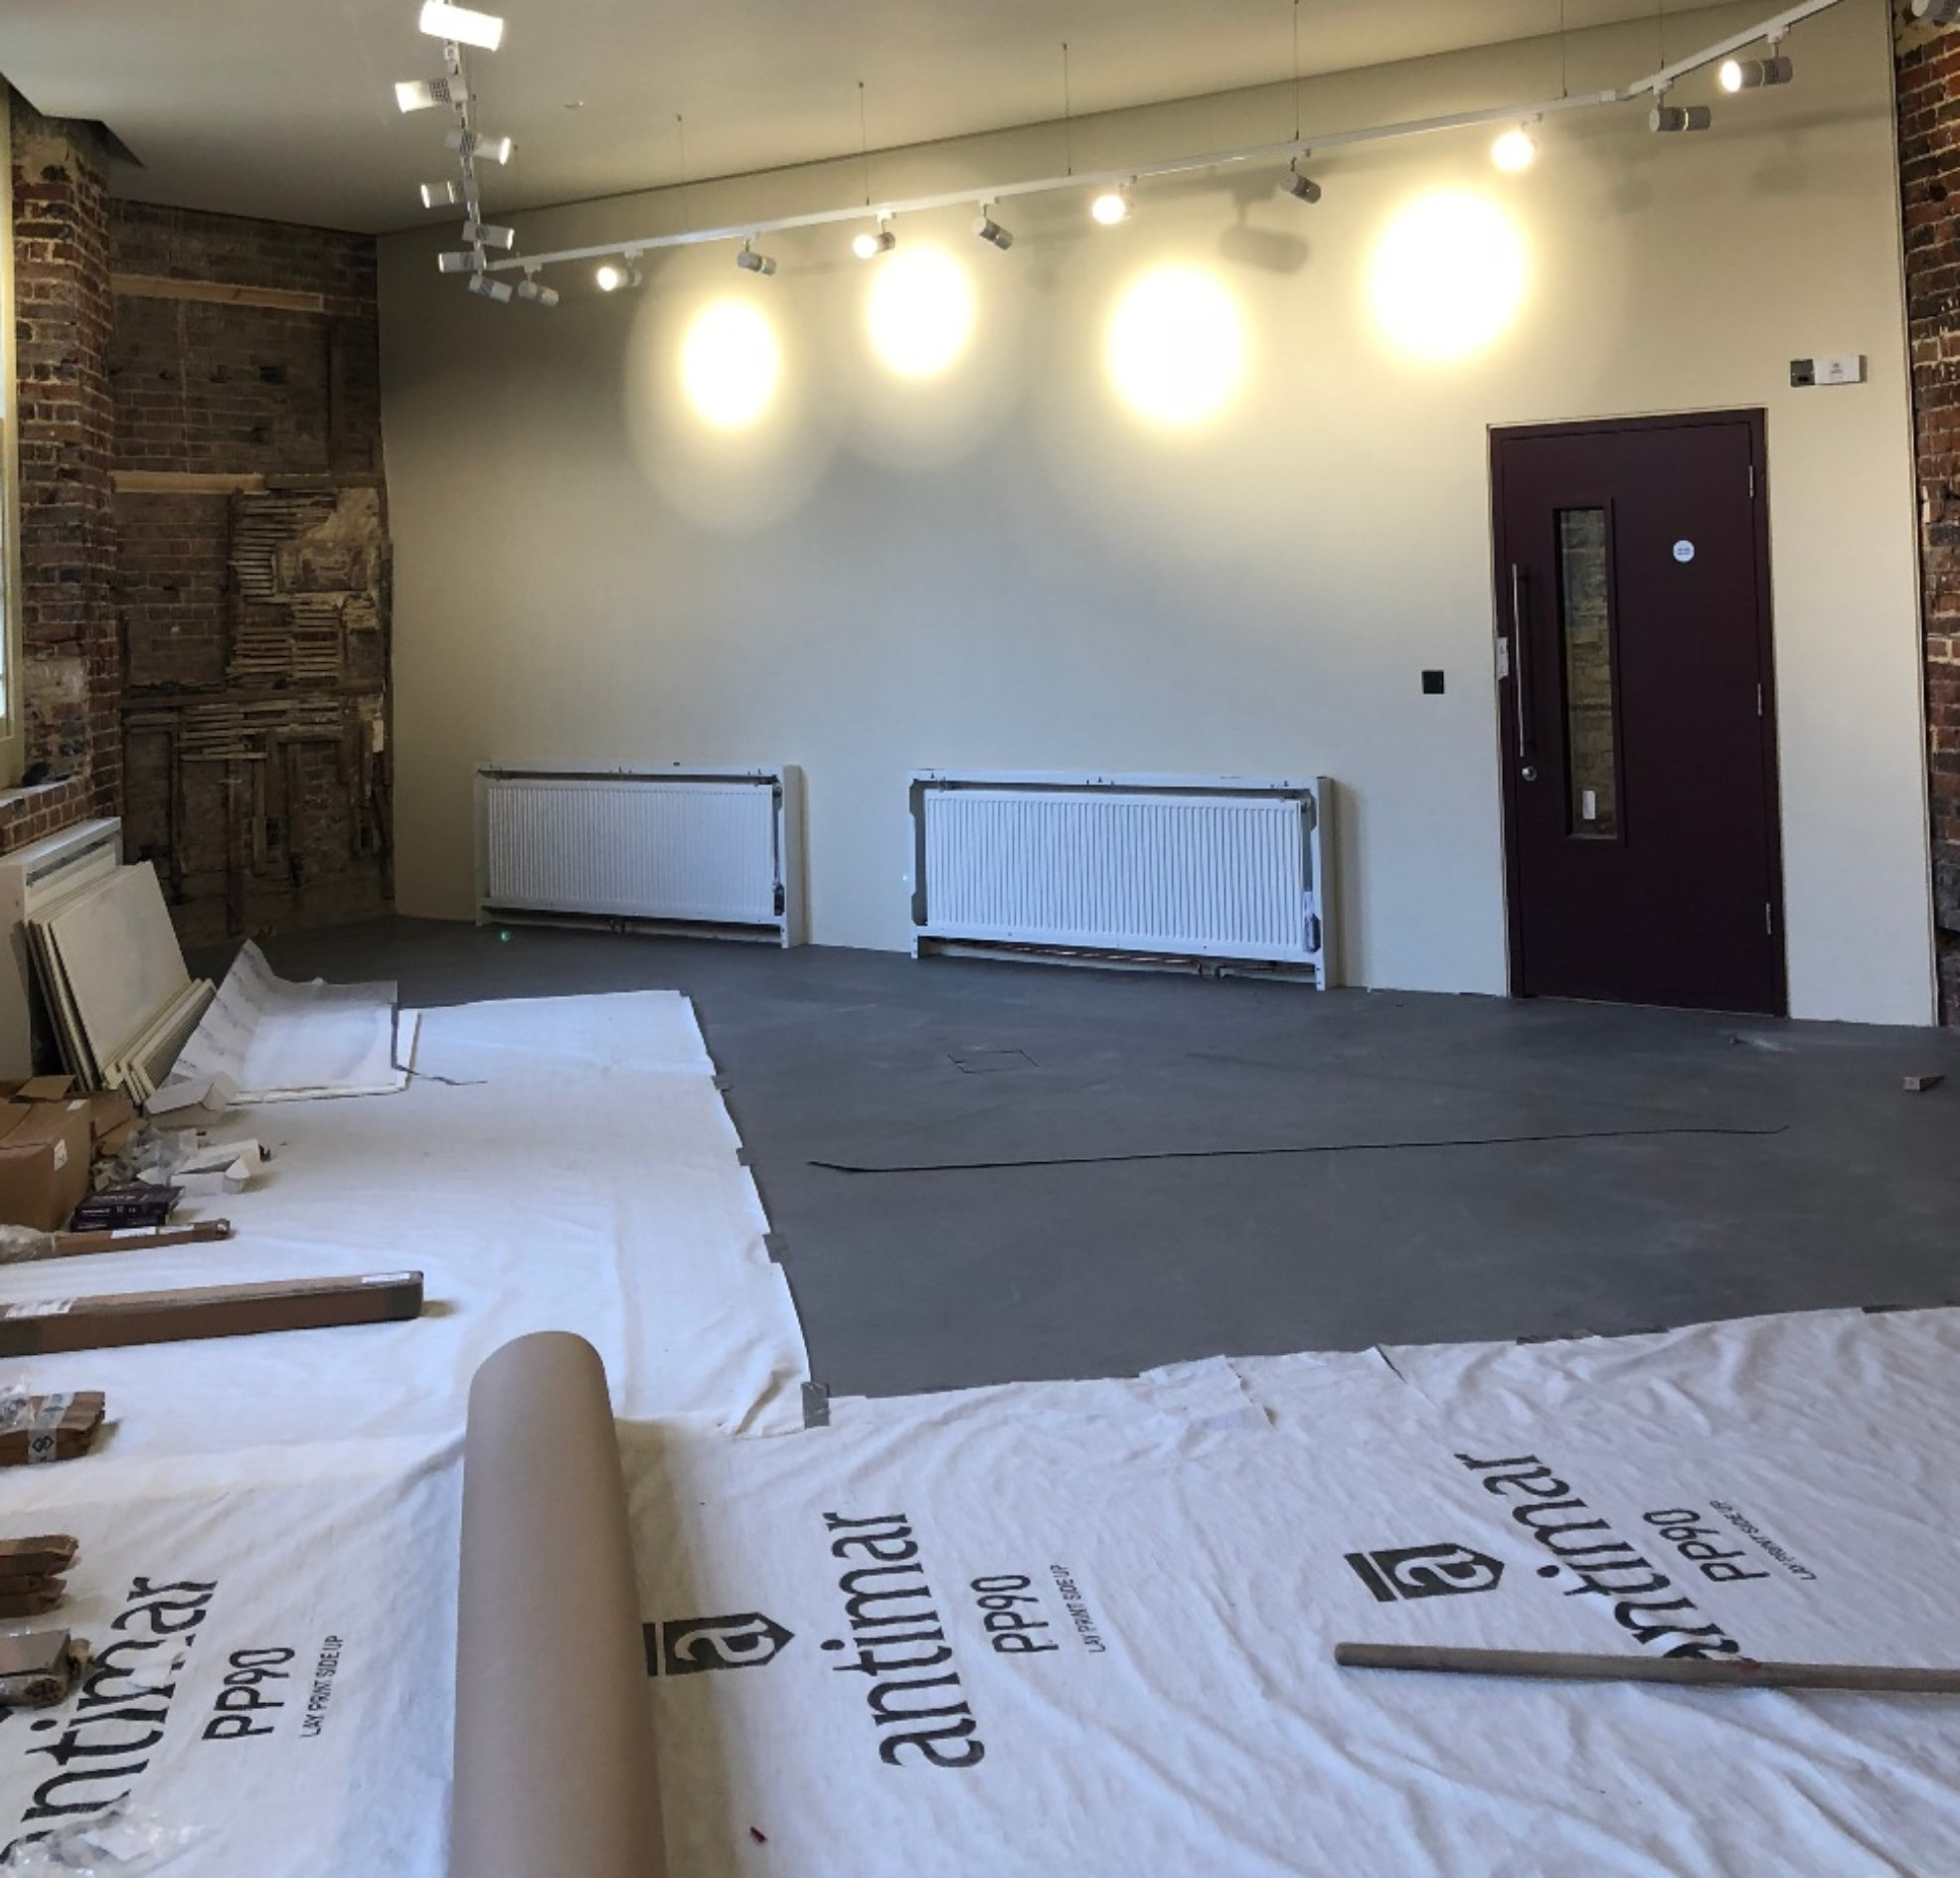 Preparation for new flooring being laid